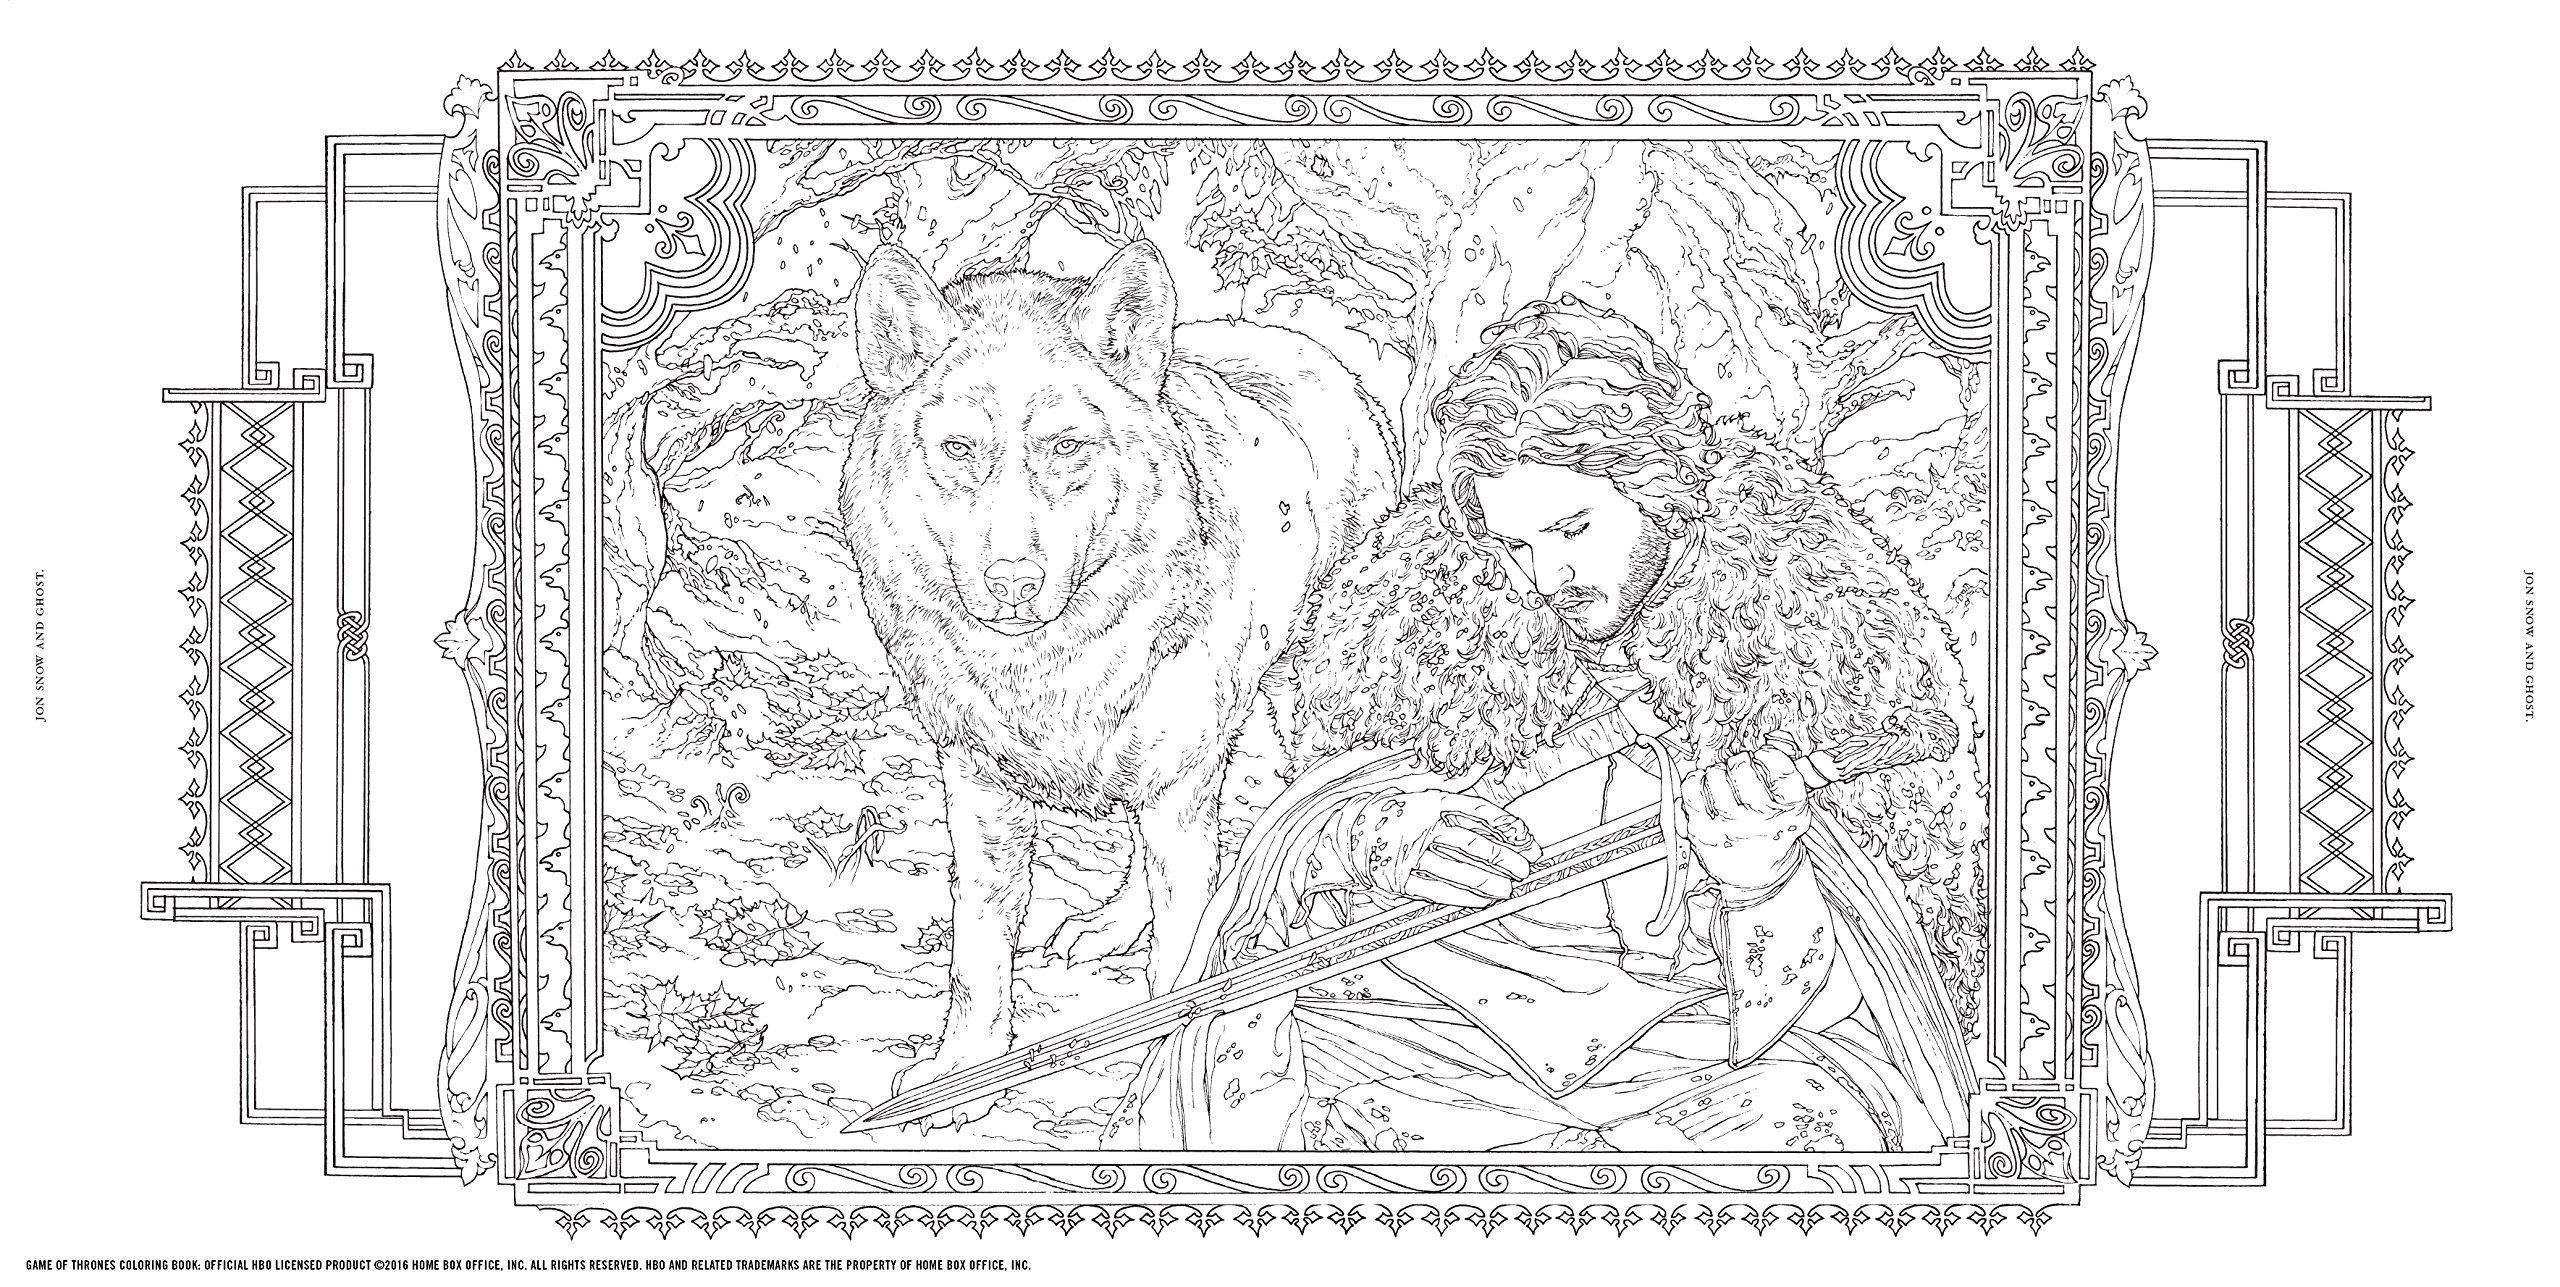 Adult coloring book game of thrones - Hbo S Game Of Thrones Coloring Book Hbo 9781452154305 Amazon Com Books